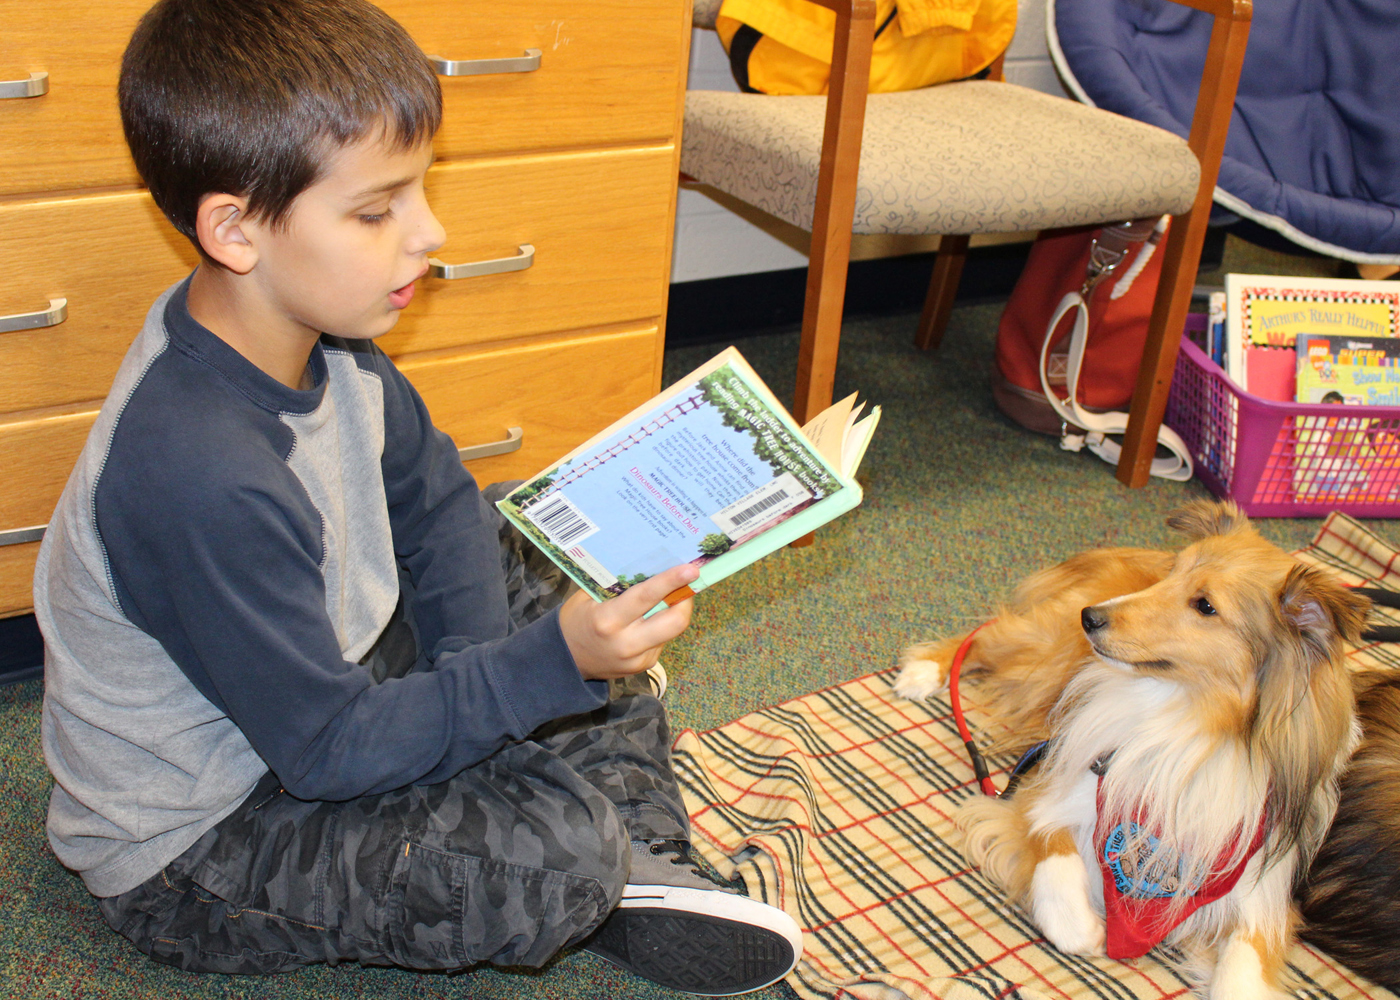 Carter Davis, a fourth grader in Julie Light's class, reads to one of the dogs visiting during Night at the Village, Village Elementary School's One School, One Book family event. Provided photo